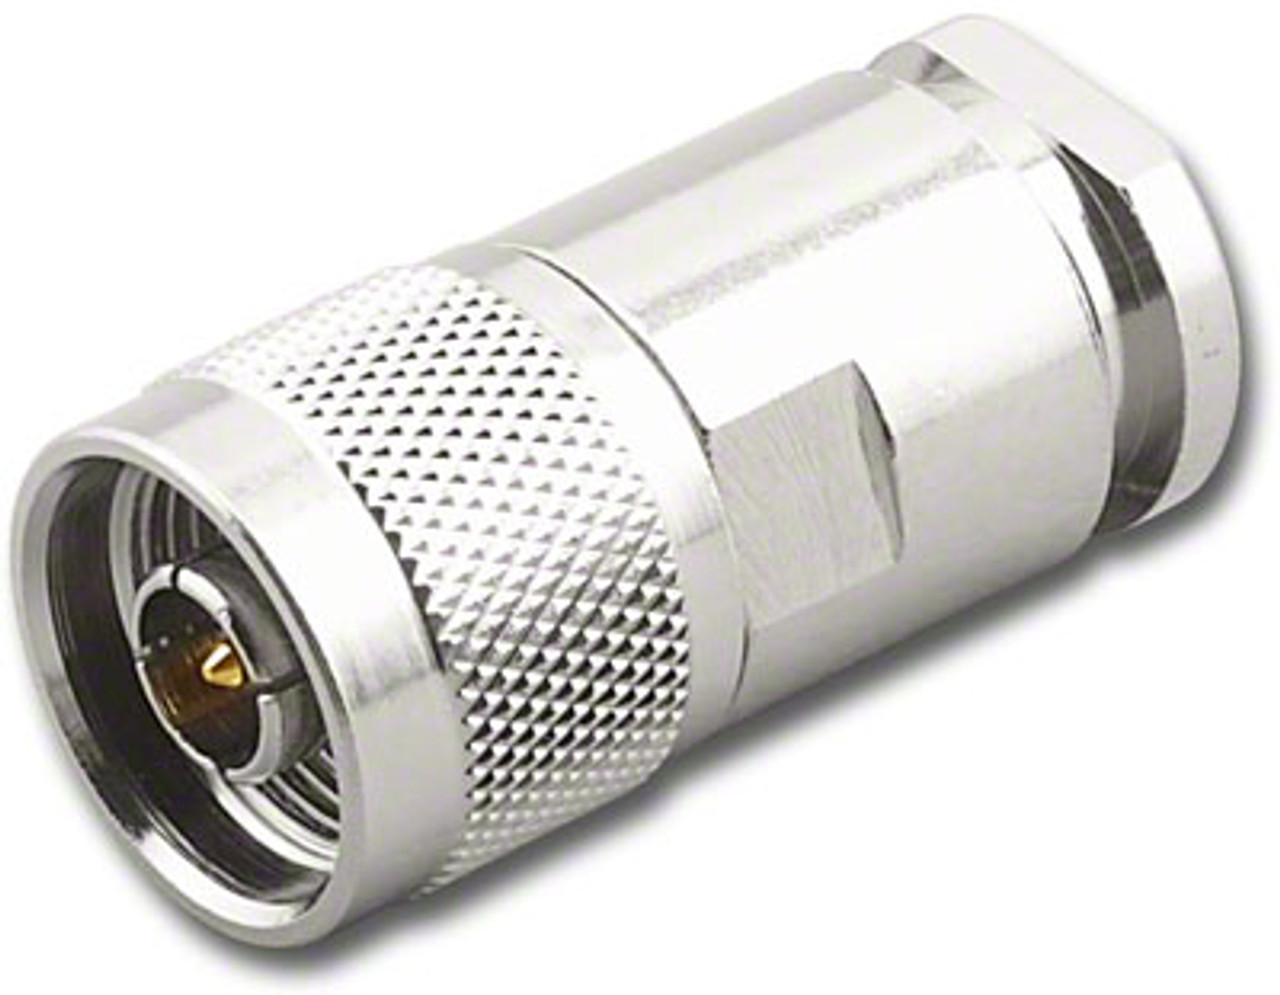 Type N-Male Coaxial Cable End Compression Connector